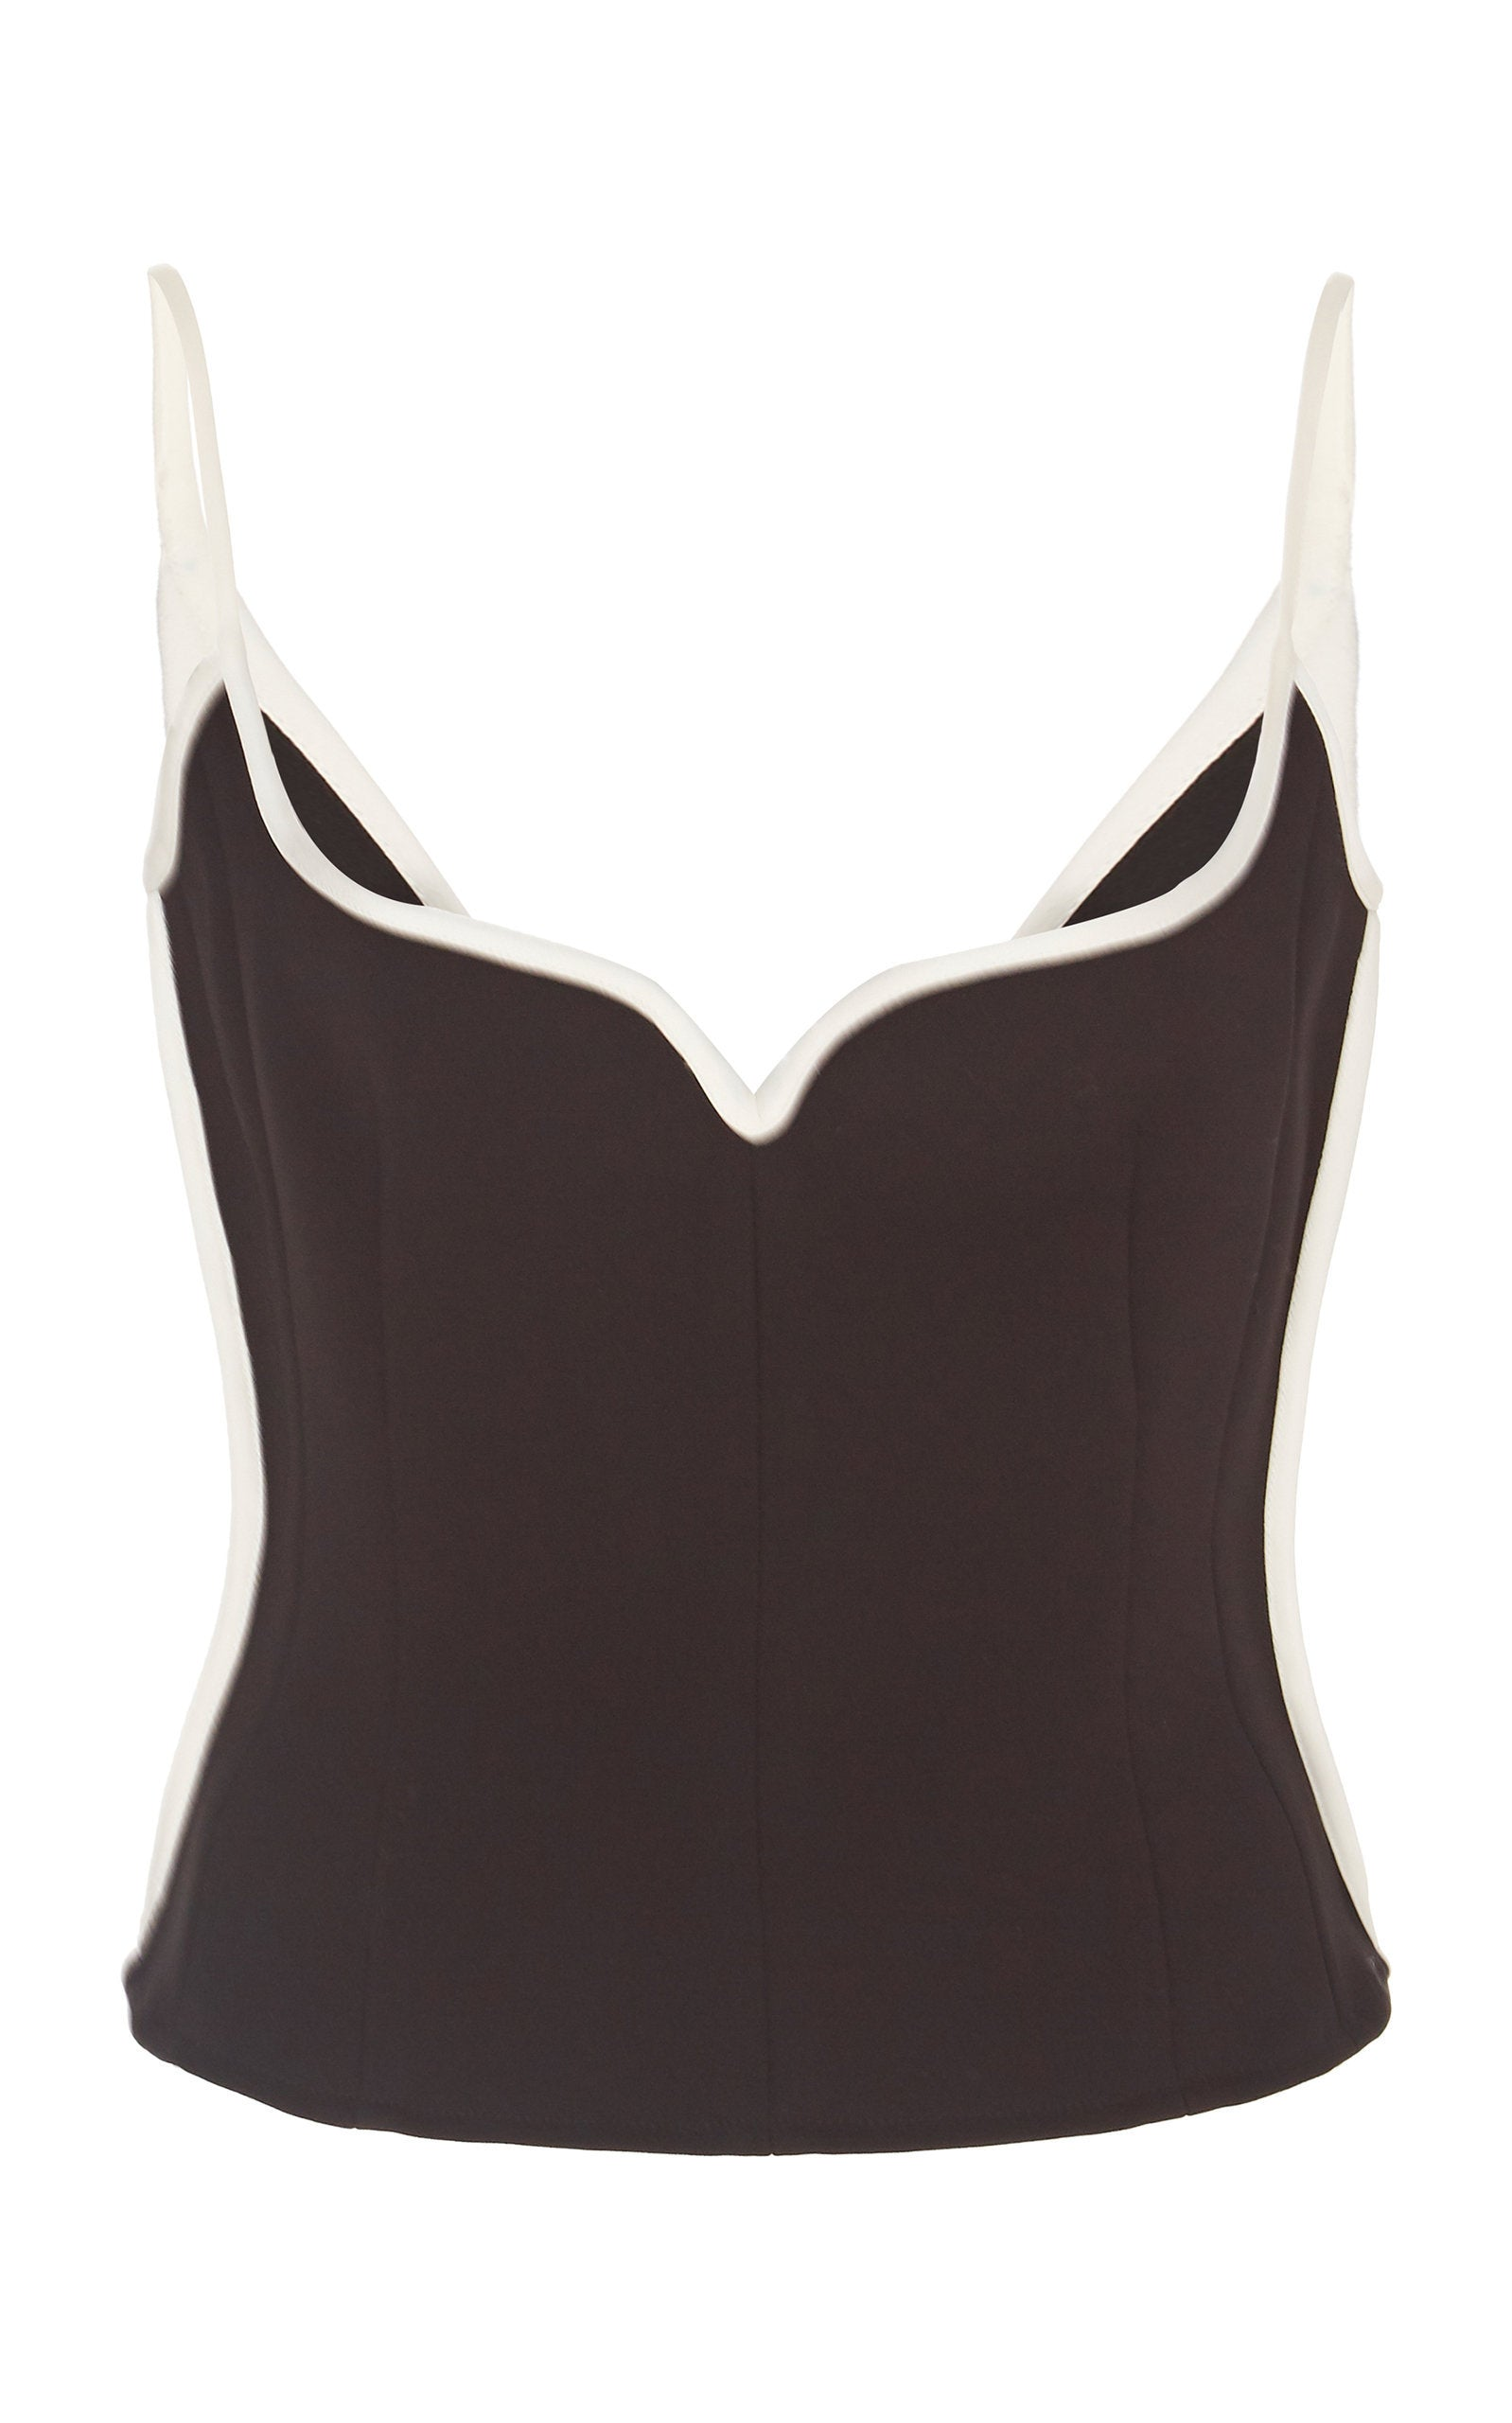 Heart Singlet | Black with White